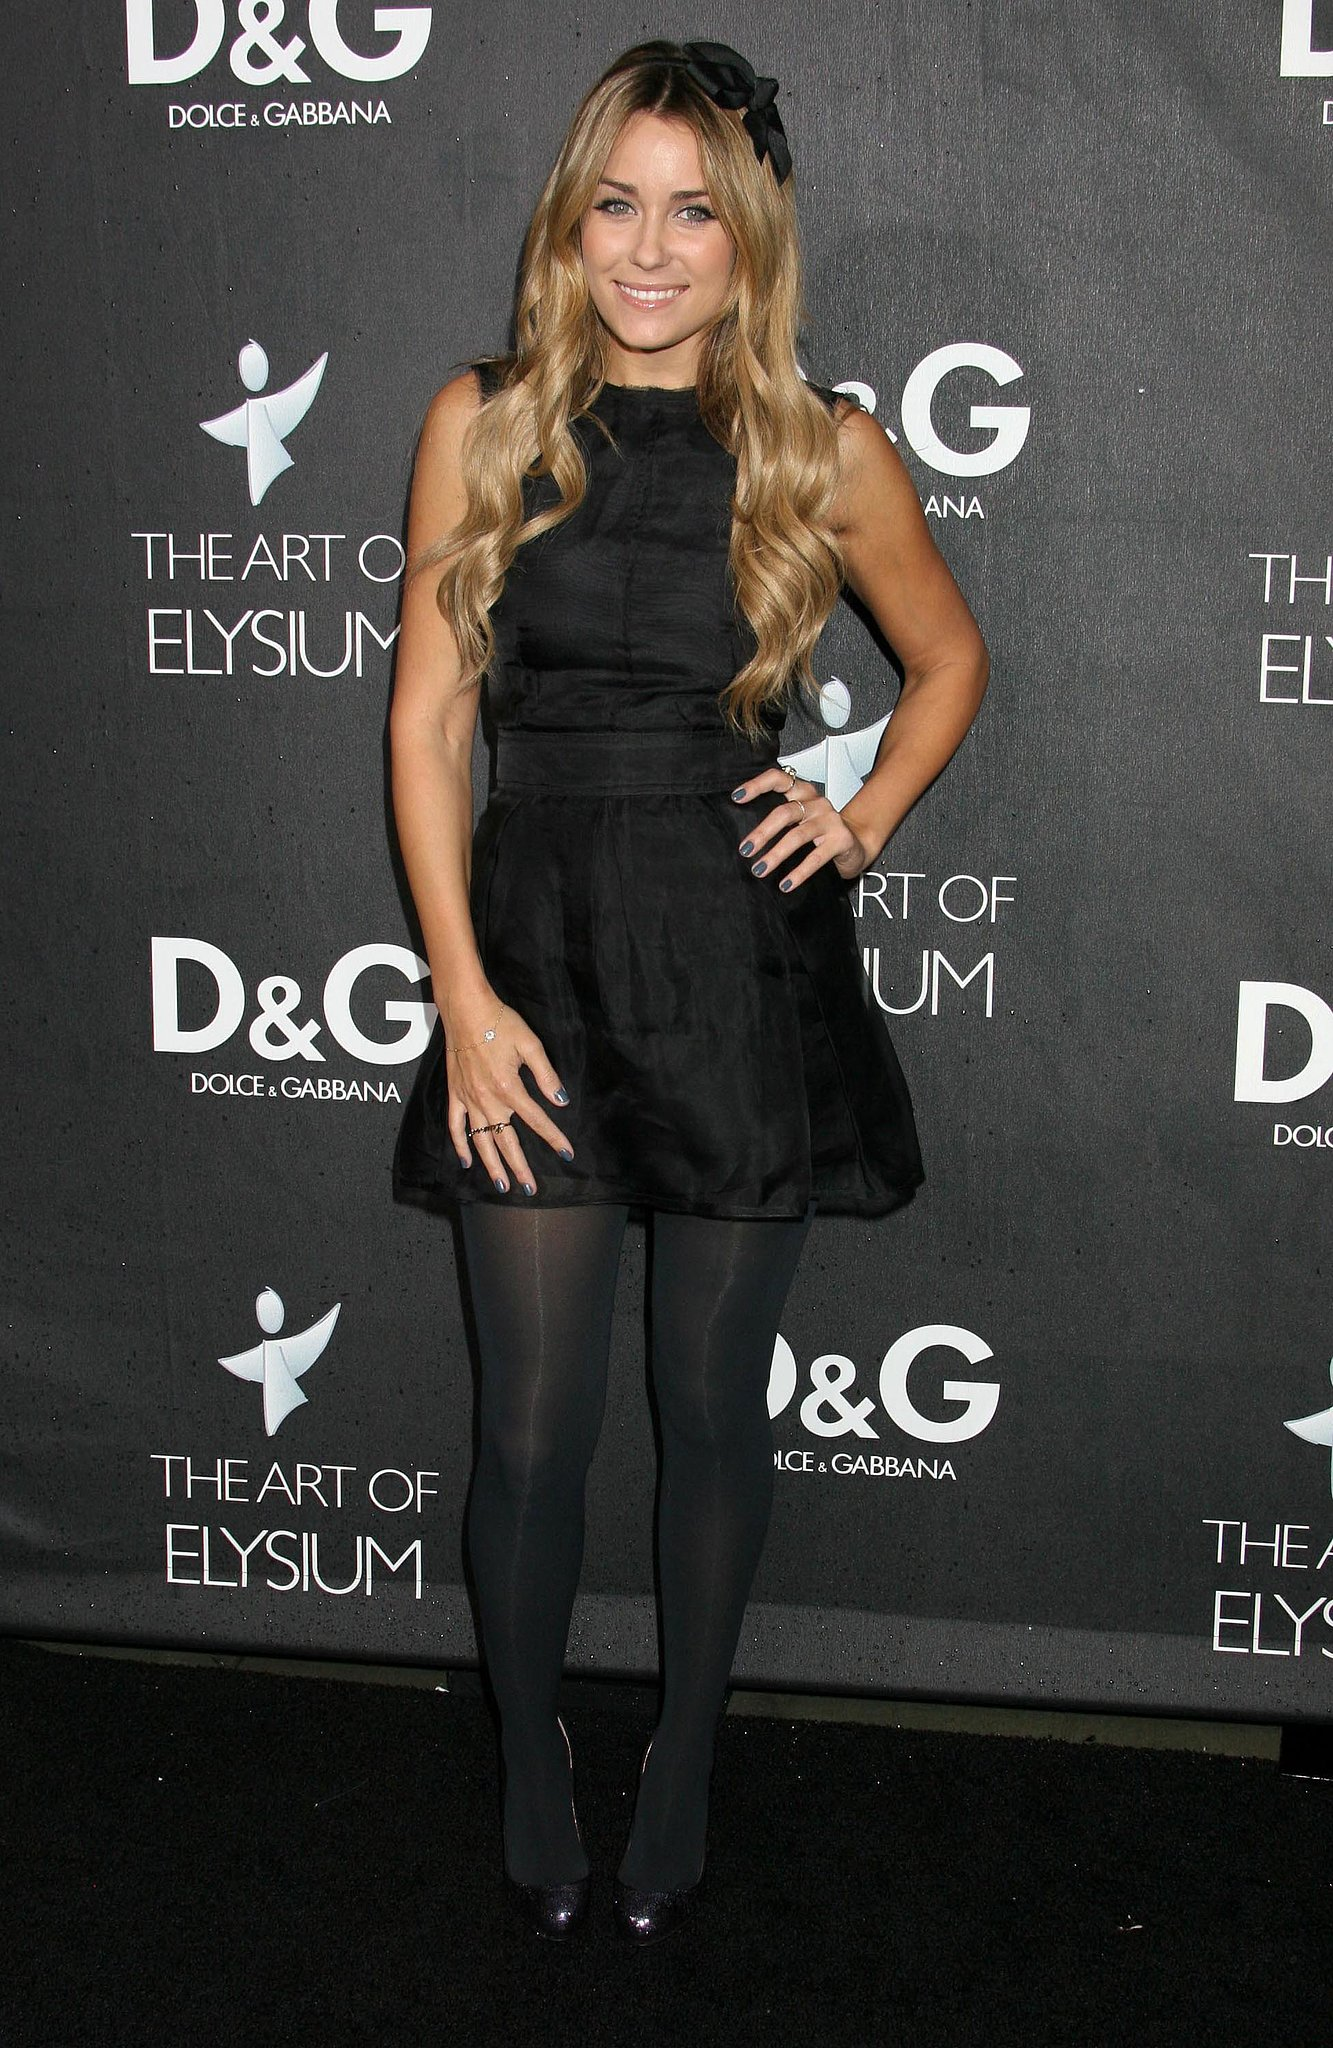 Lauren topped her flirty black minidress with breezy beach waves and a bow headband at the D&G flagship boutique opening in Beverly Hills in 2008. Lesson from Lauren: turn up the sweetness with a bow accessory.